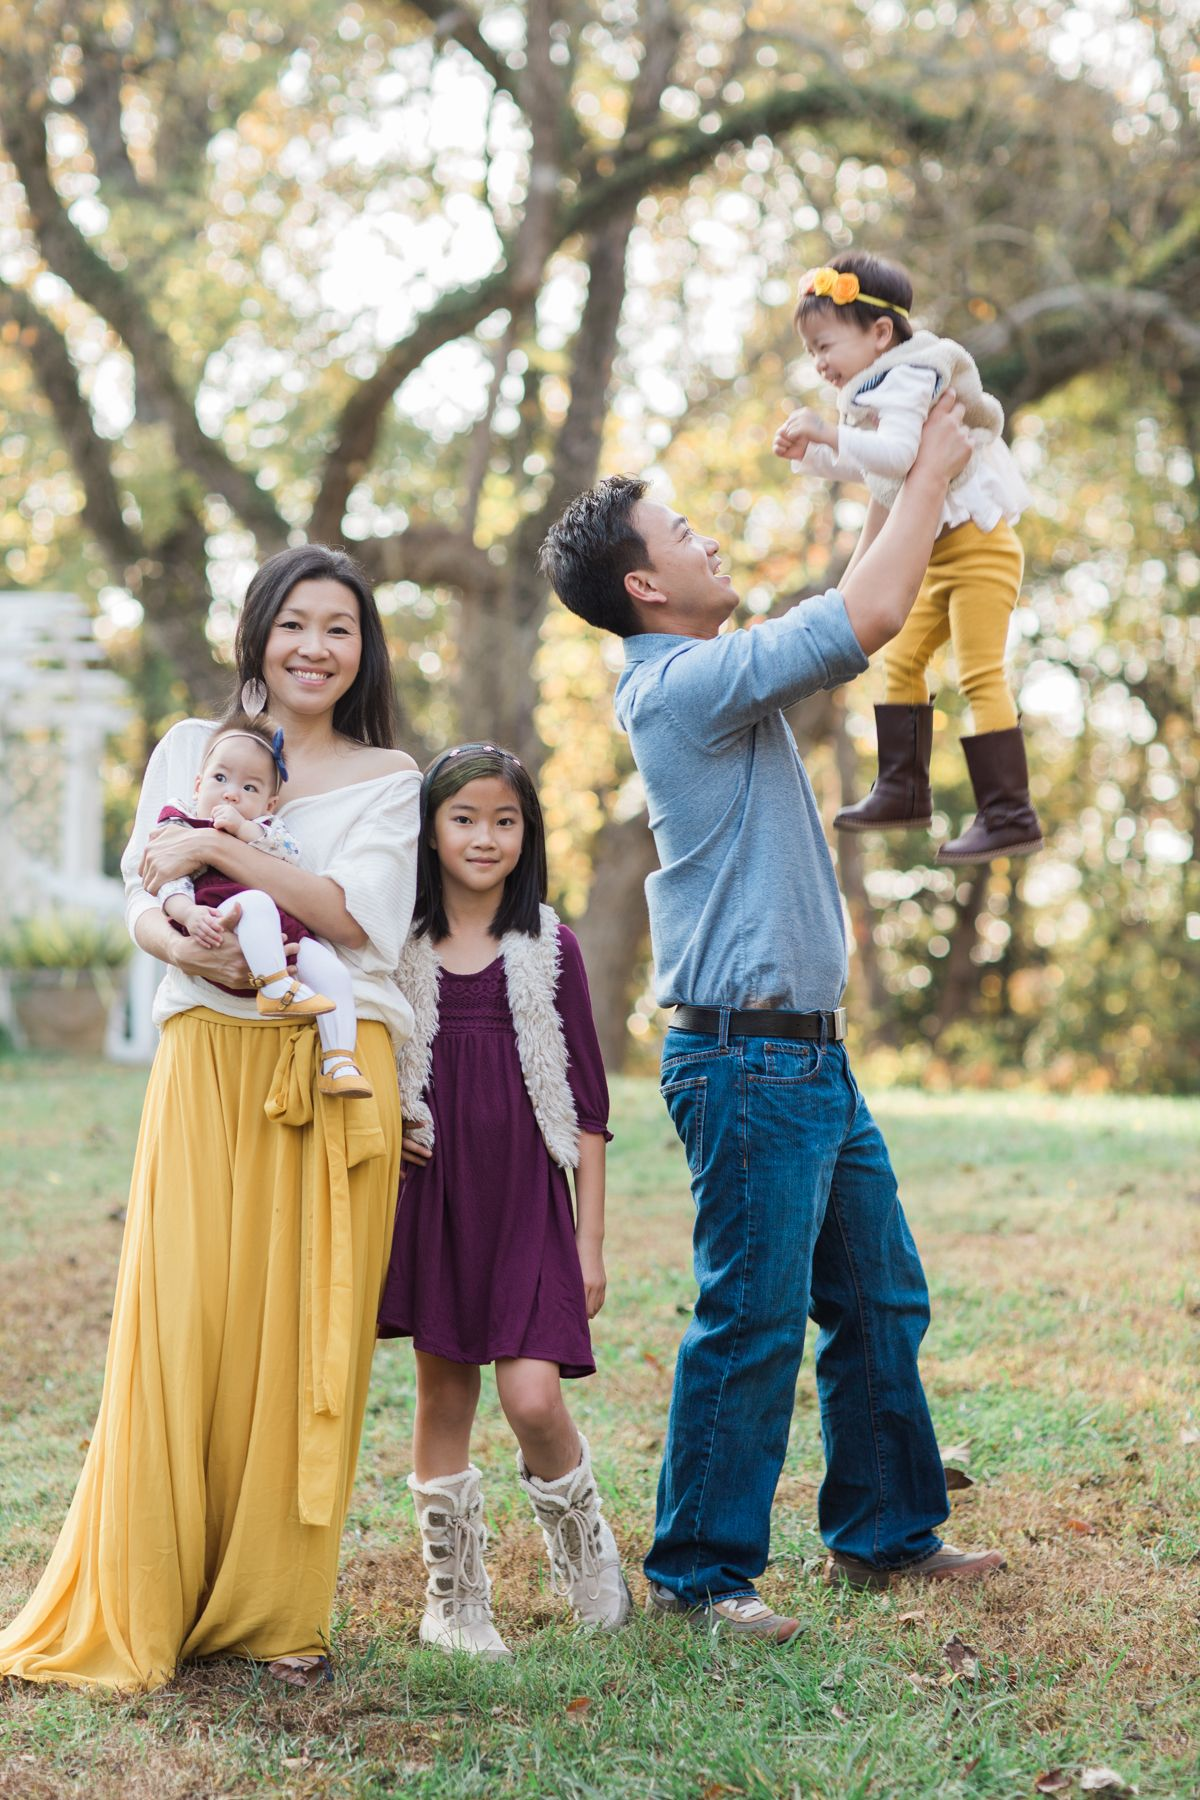 Fall family photos, family photo outfit ideas, family photo session, mustard yellow skirt, family photography, family photography ideas, family photography posing, atlanta ga, best family photographer #familyphotooutfits